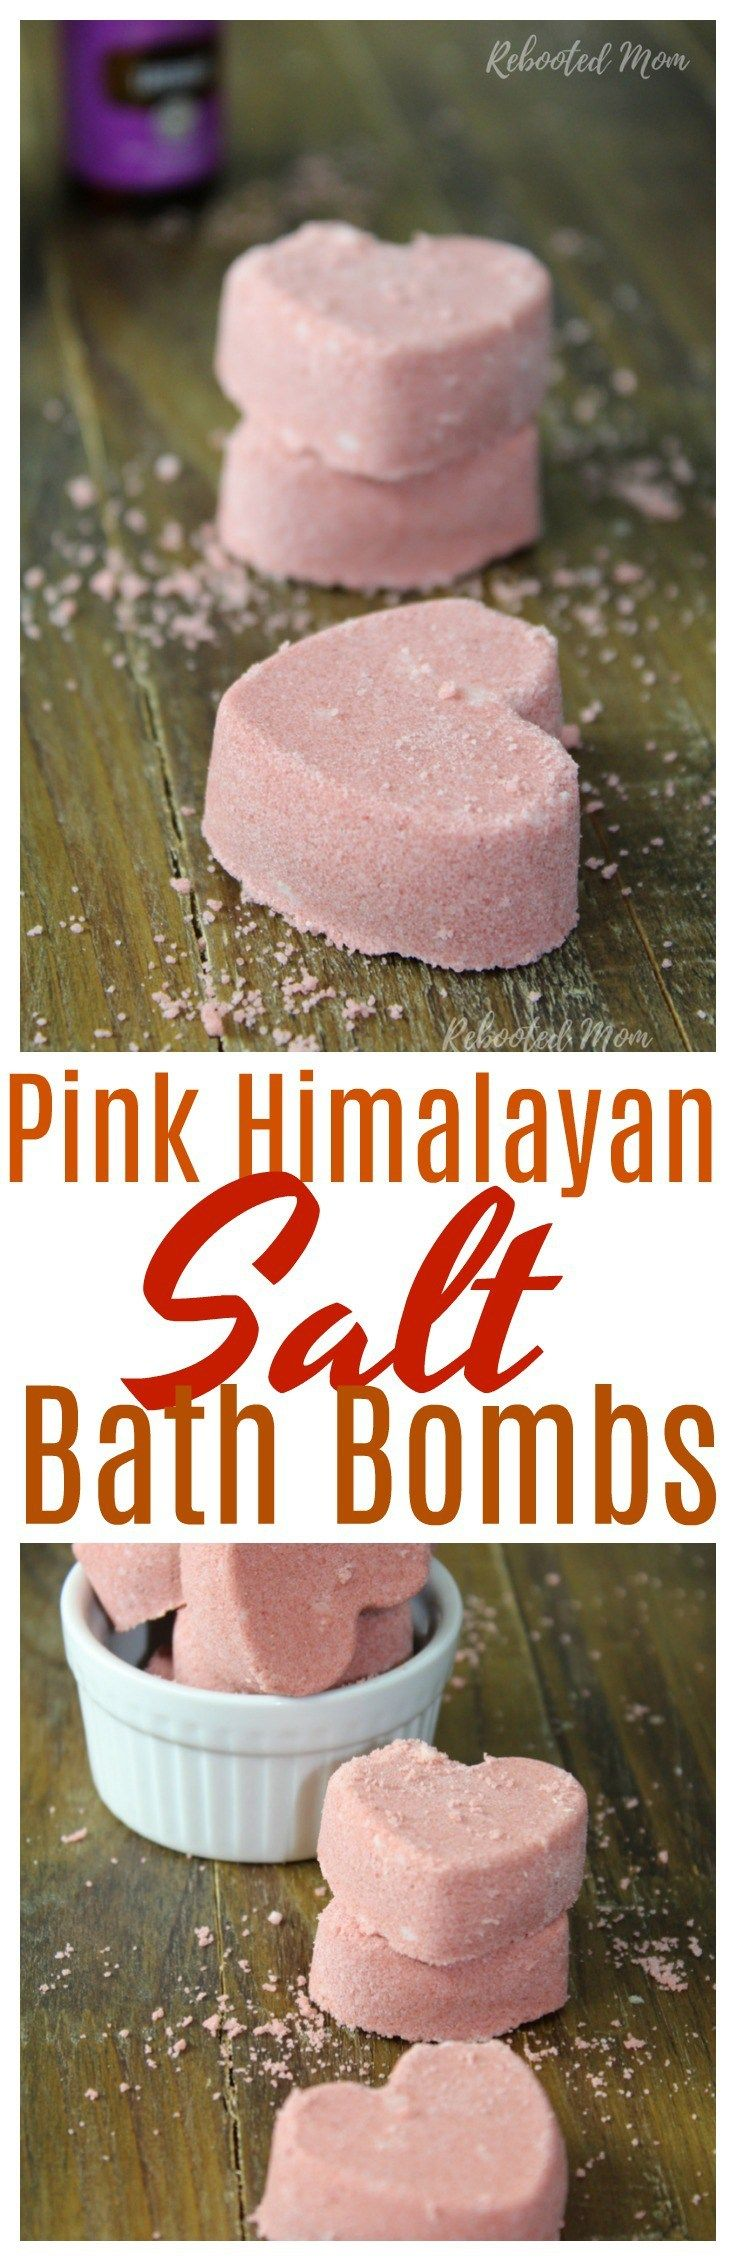 These Pink Himalayan Salt Bath Bombs are super easy to make and great as gifts!